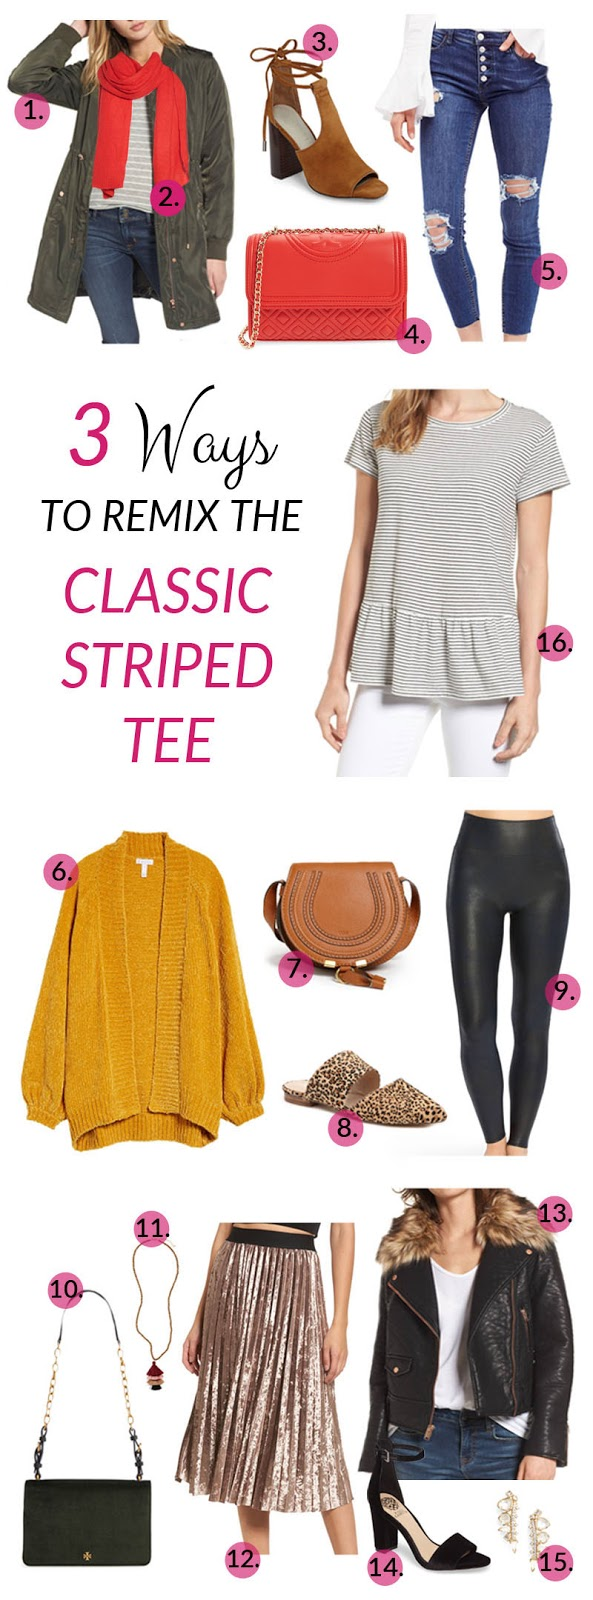 3 Ways to Remix the Classic Striped Tee by East Memphis fashion blogger Walking in Memphis in High Heels